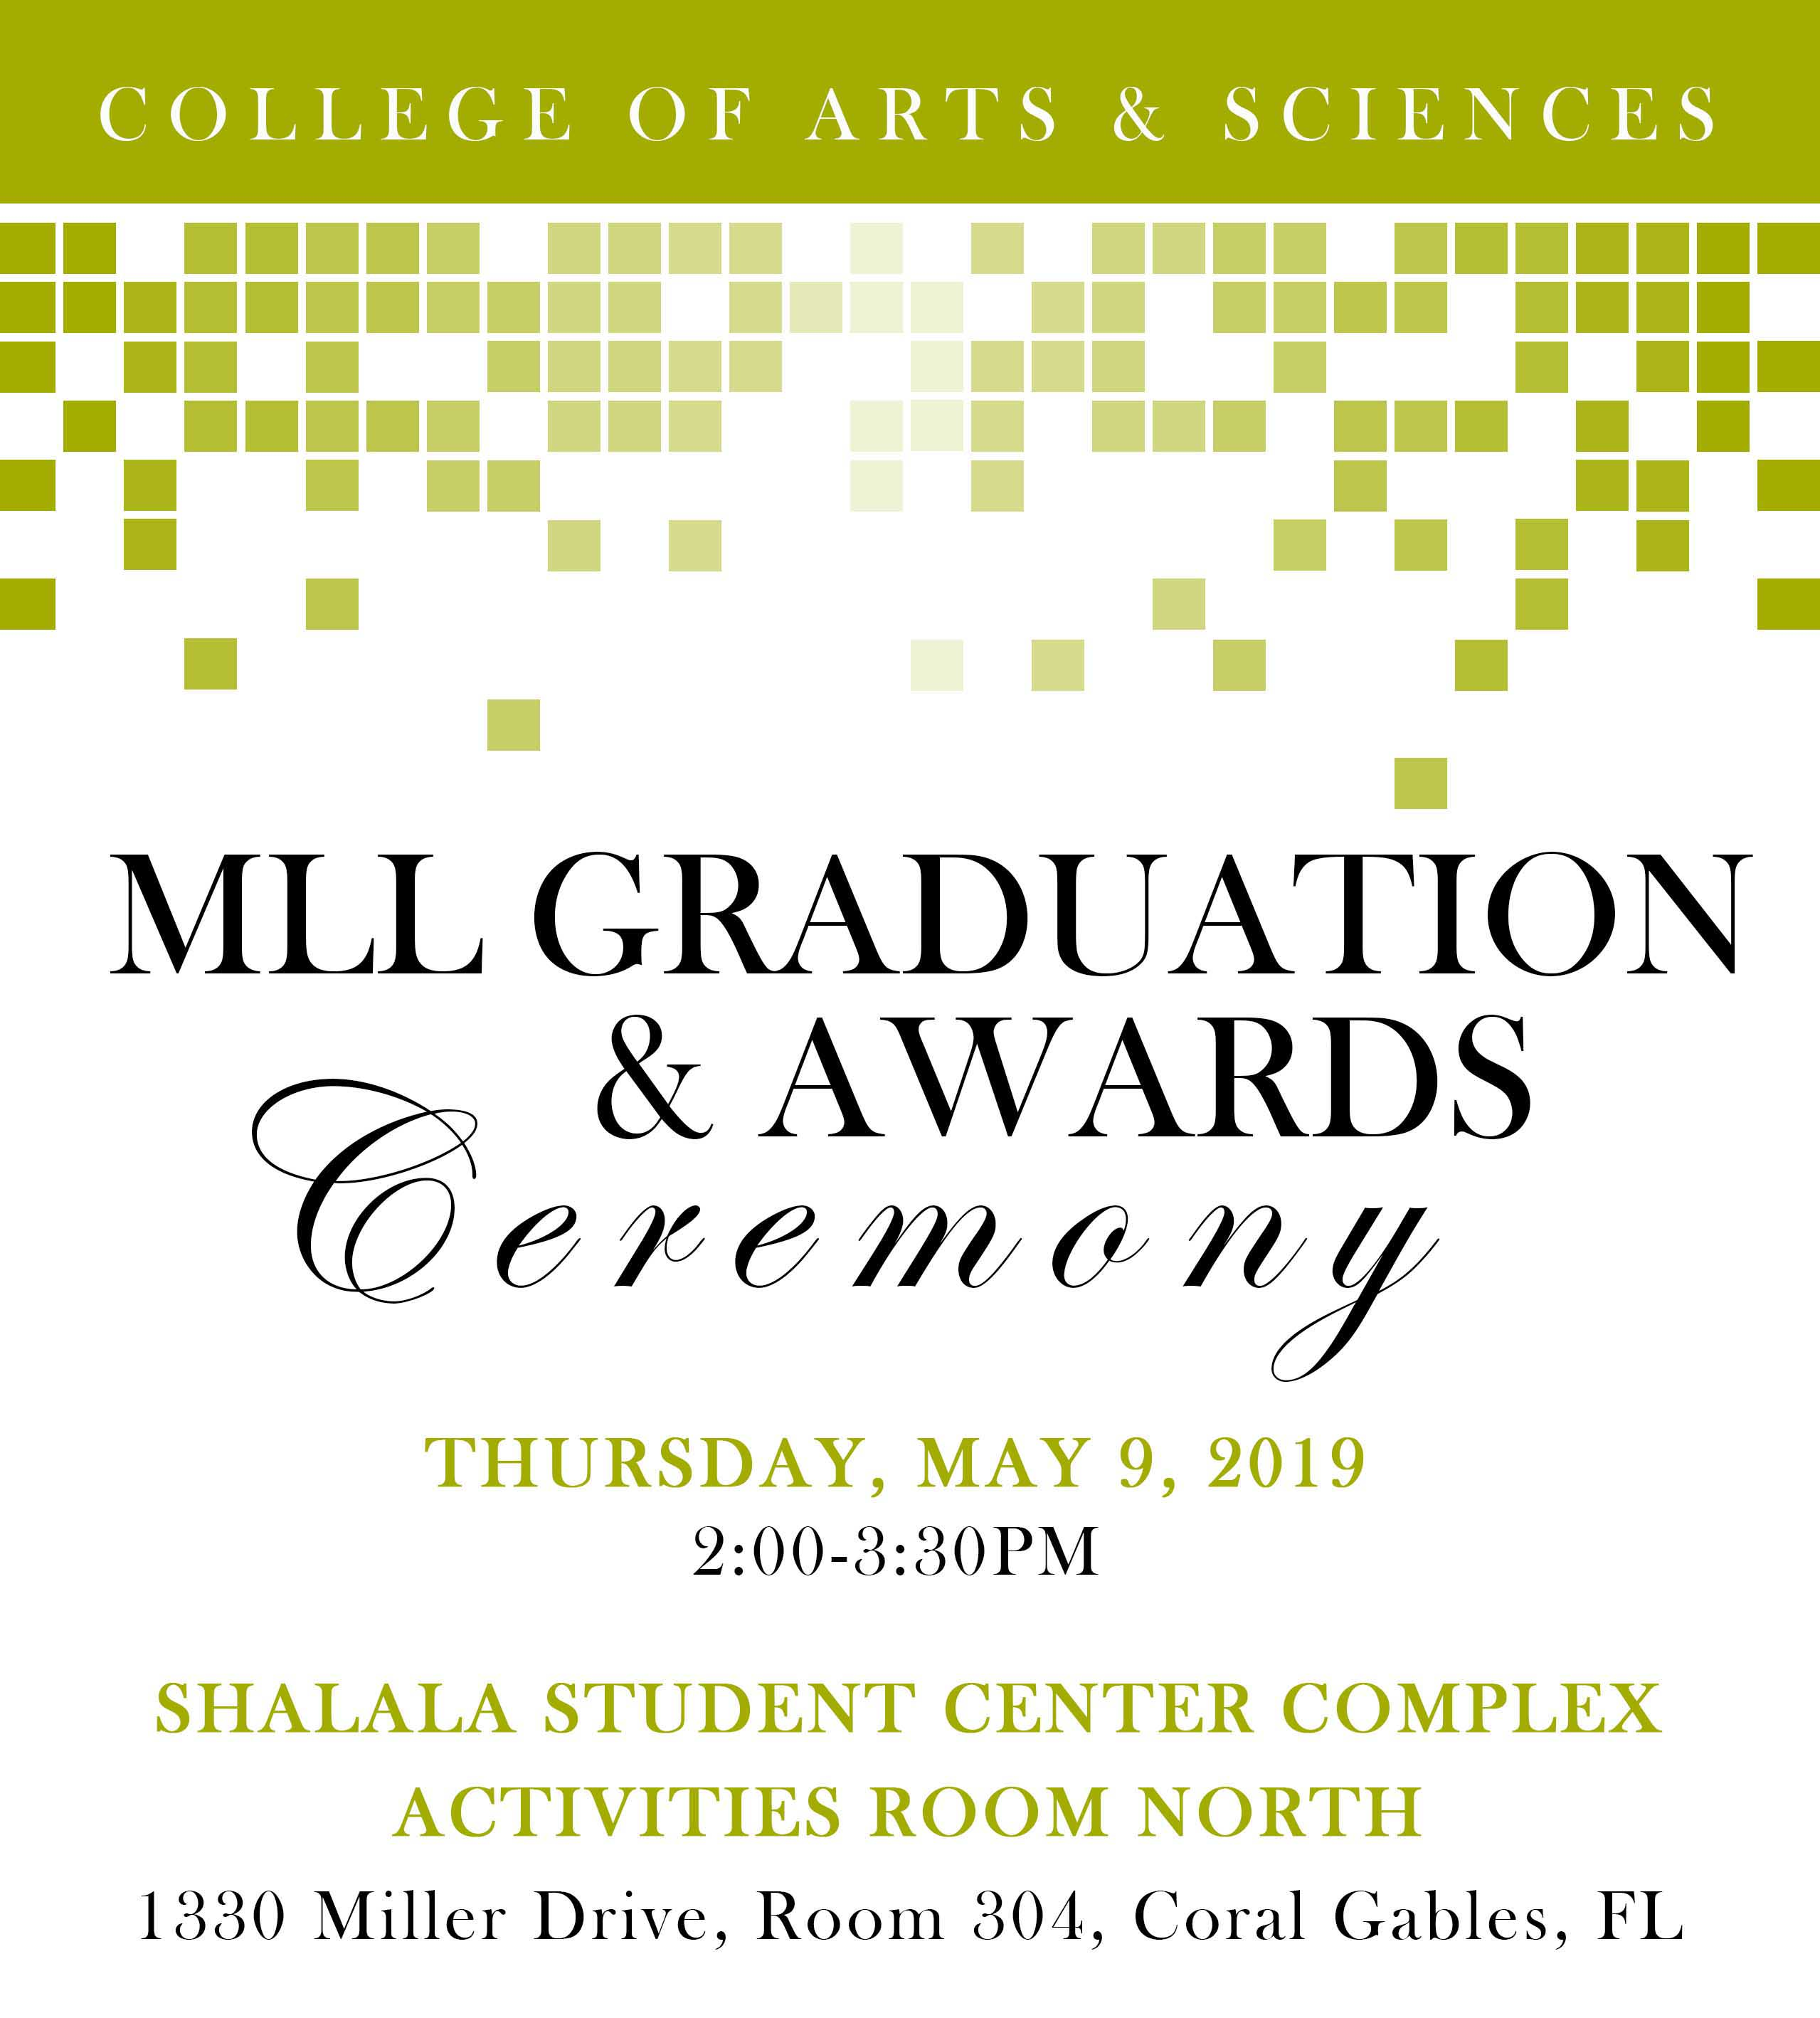 MLL Graduation & Award Ceremony